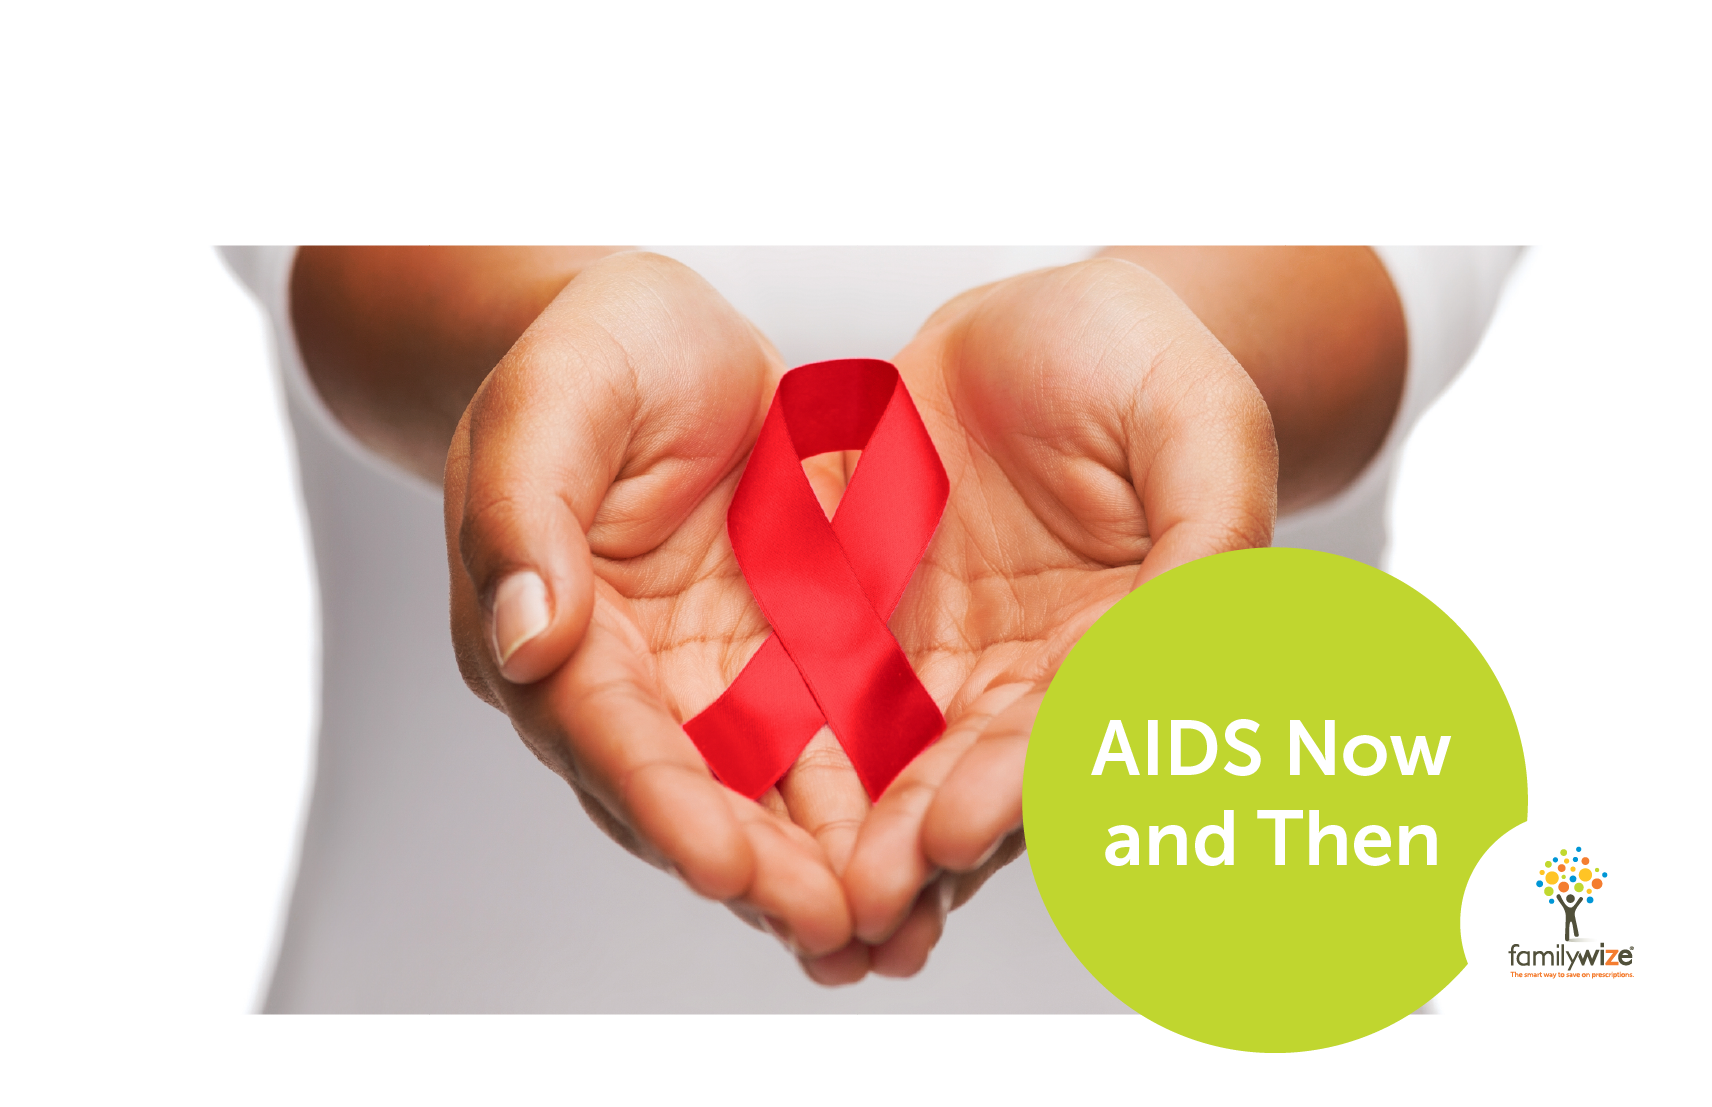 AIDS Now & Then